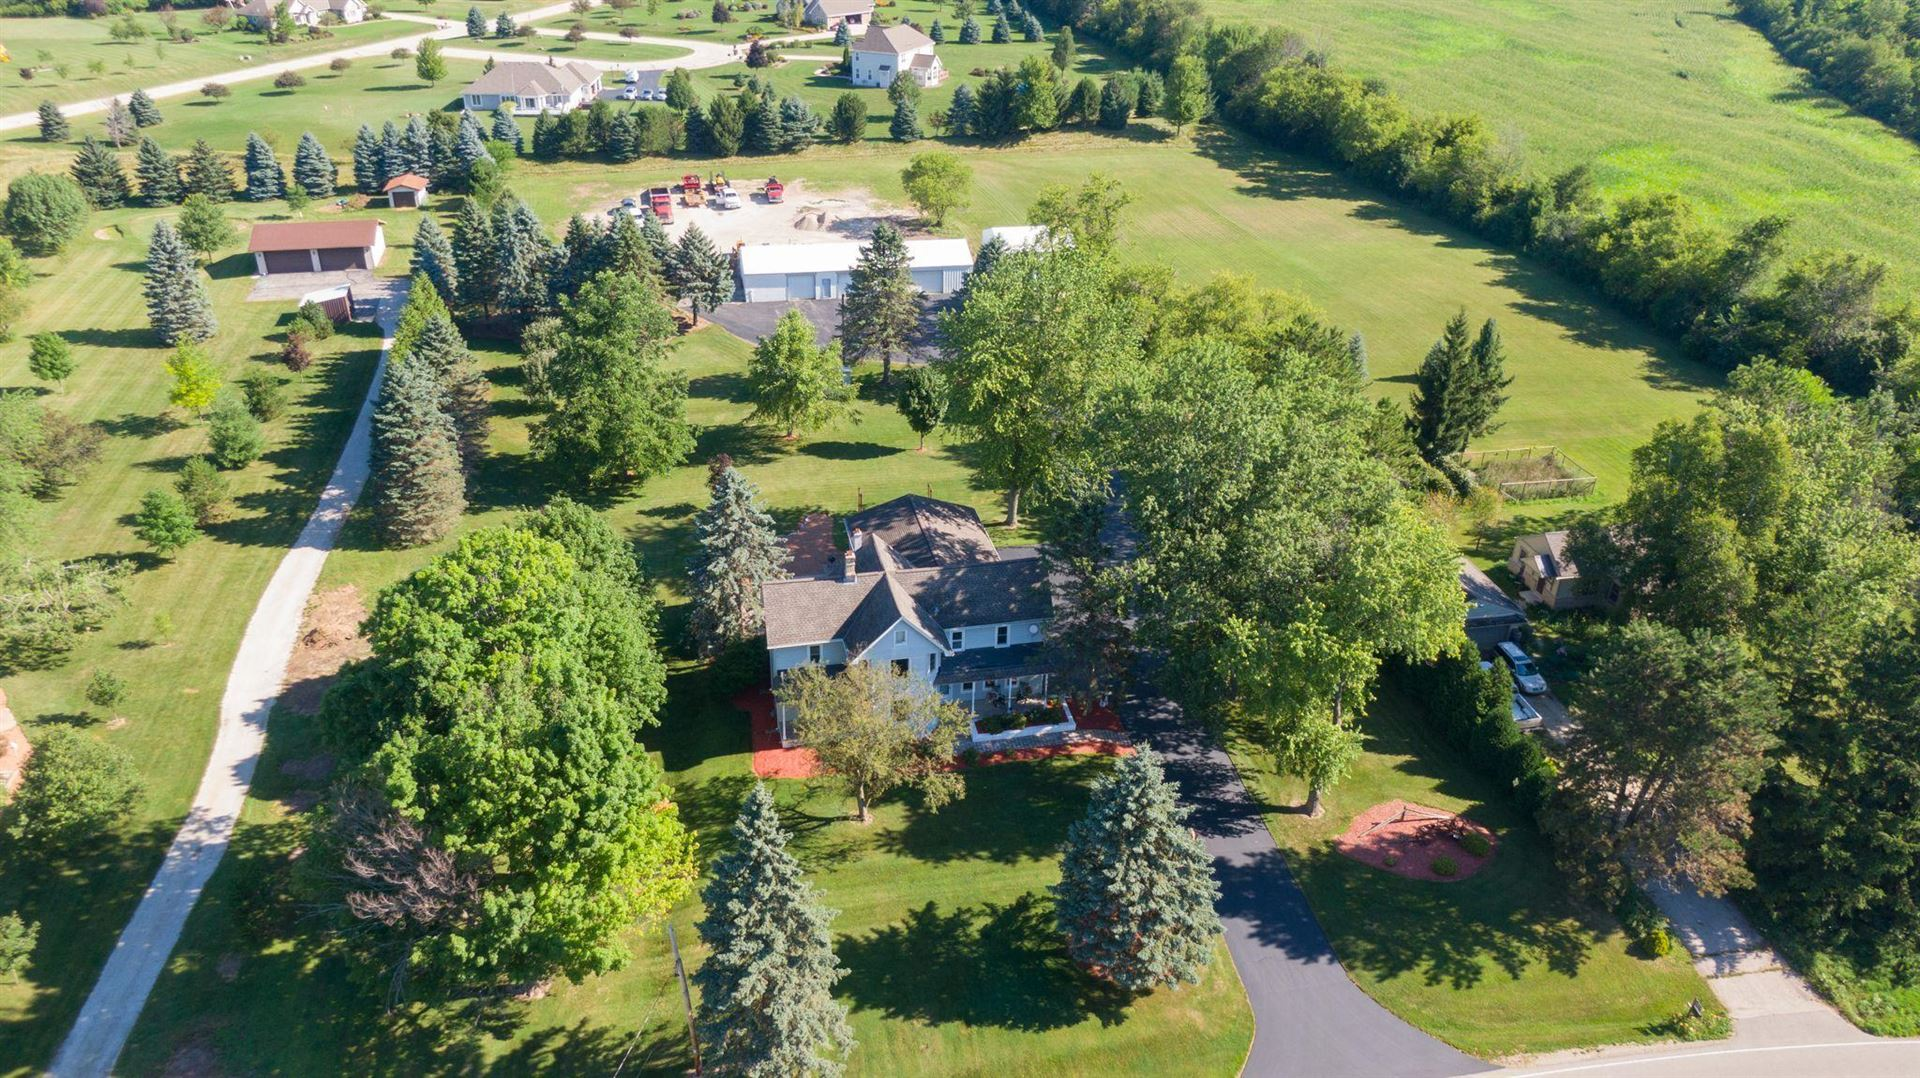 4600 Monches Rd, Richfield, WI 53017 - #: 1701820